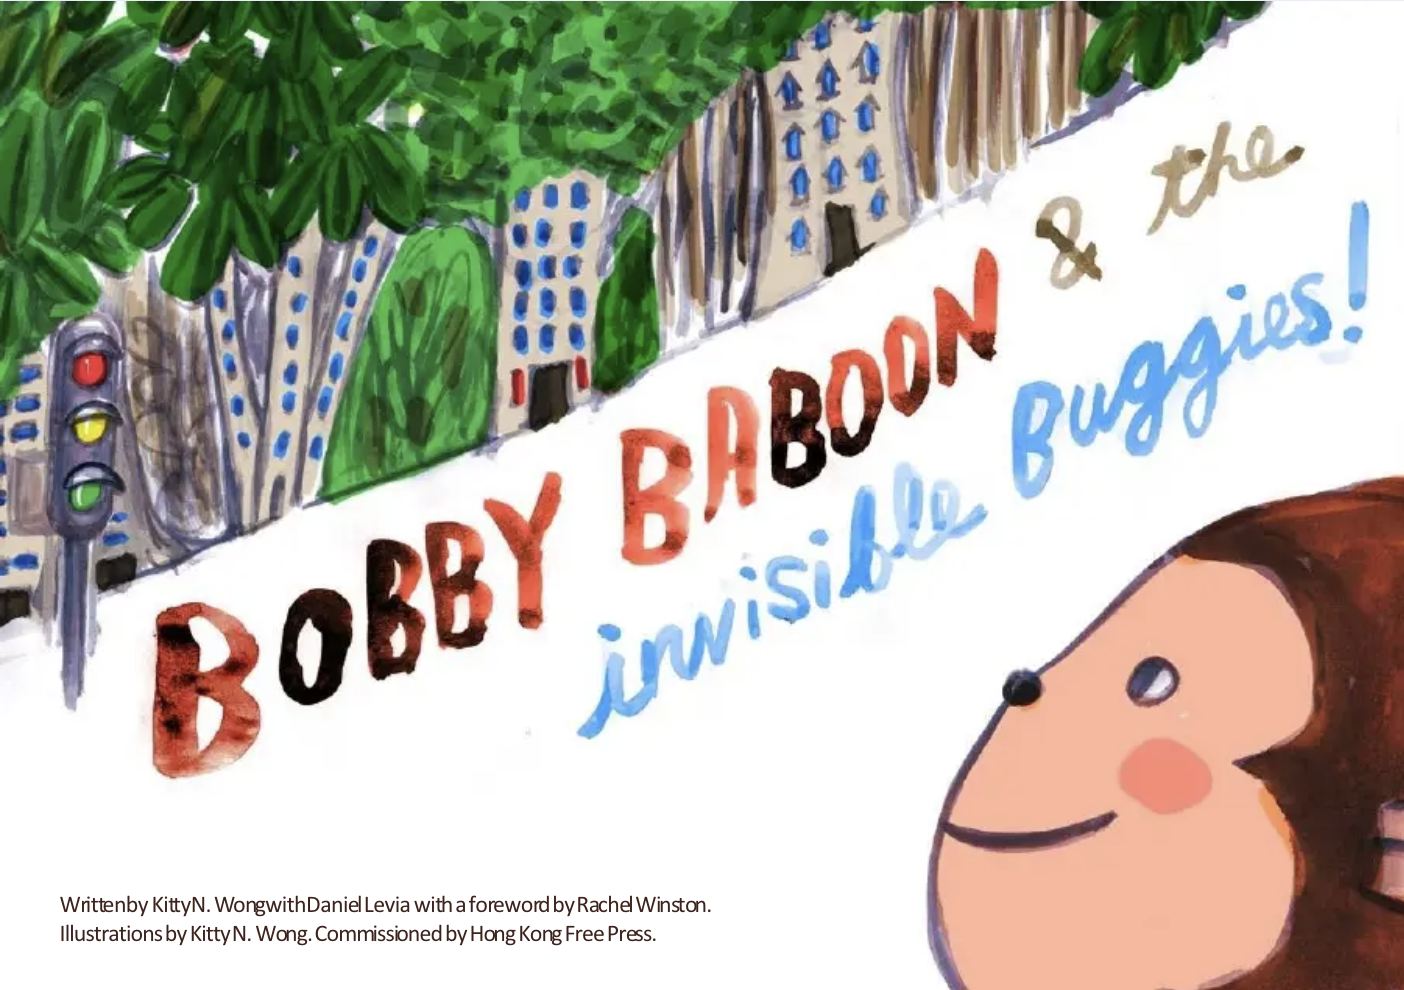 Bobby Babboon & The Invisible Buggies!